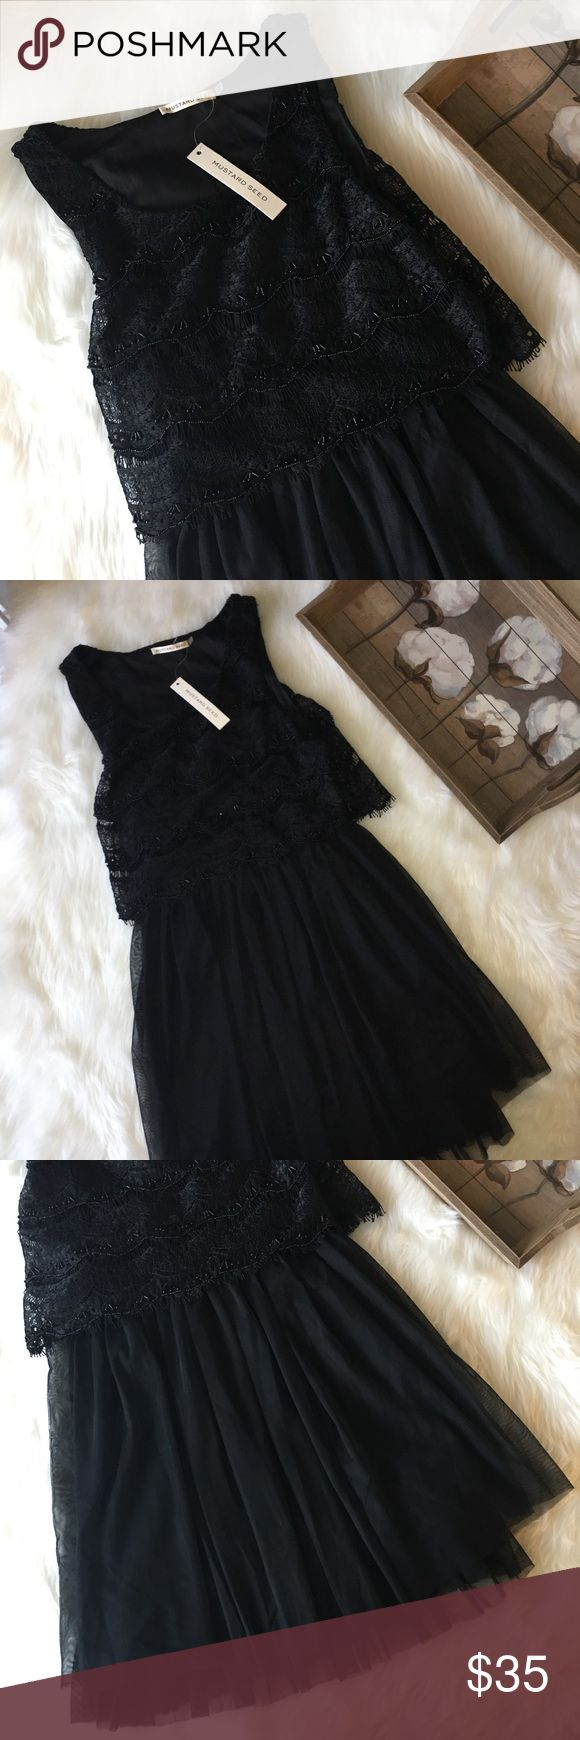 Mustard Seed Black Tulle Beaded Dress Sz S Stunning black Beaded top and Tulle bottom black Mustard Seed Dress in excellent brand new with tags condition' Mustard Seed Dresses